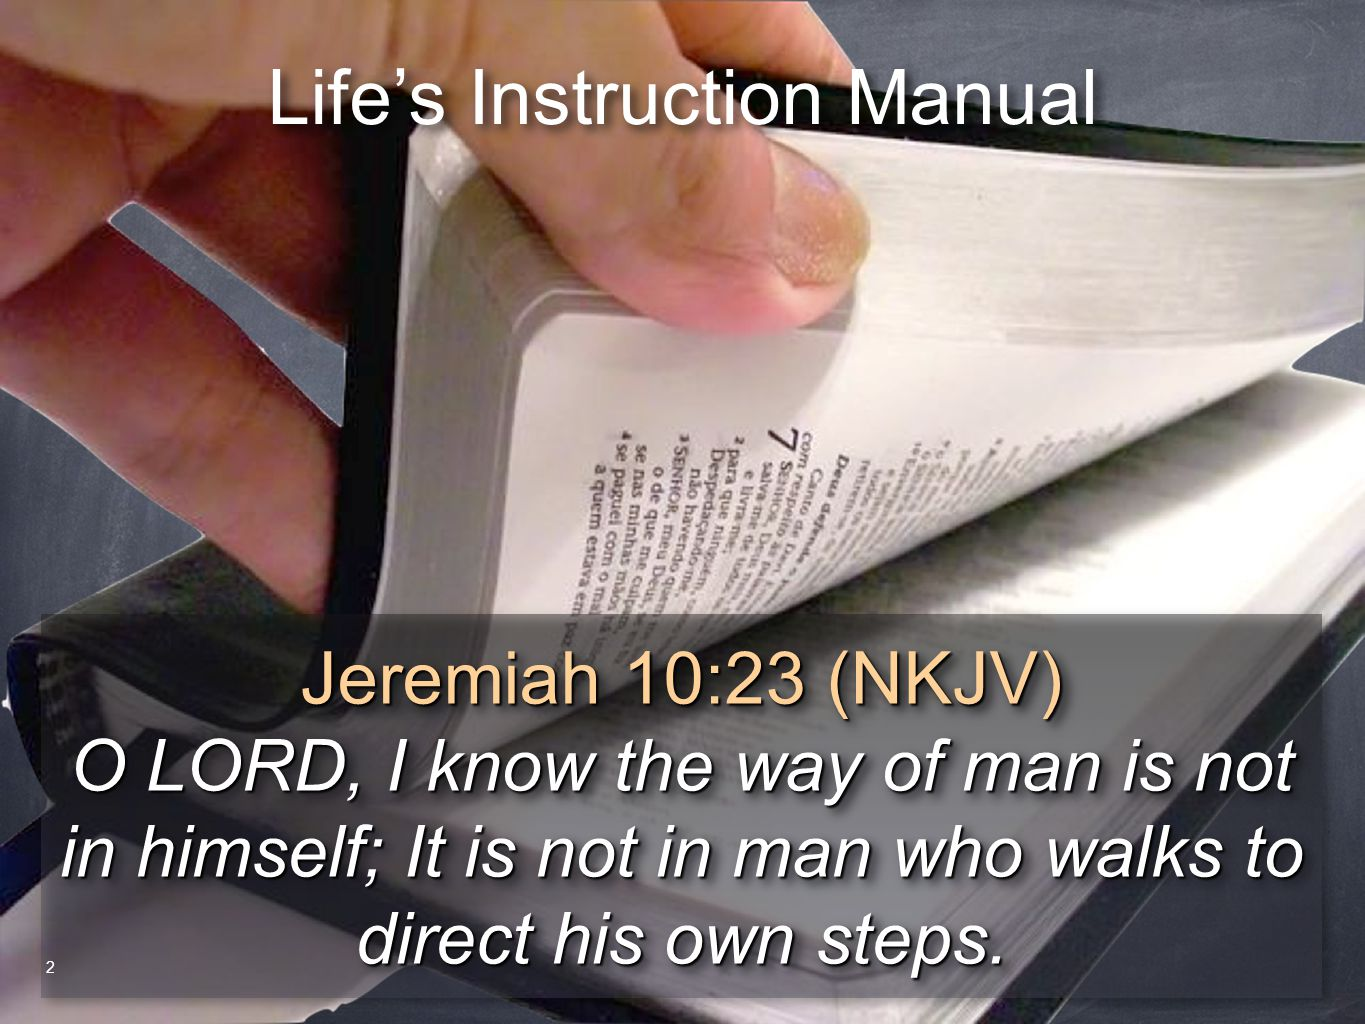 Life's Instruction Manual Jeremiah 10:23 (NKJV) O LORD, I know the way of man is not in himself; It is not in man who walks to direct his own steps. J